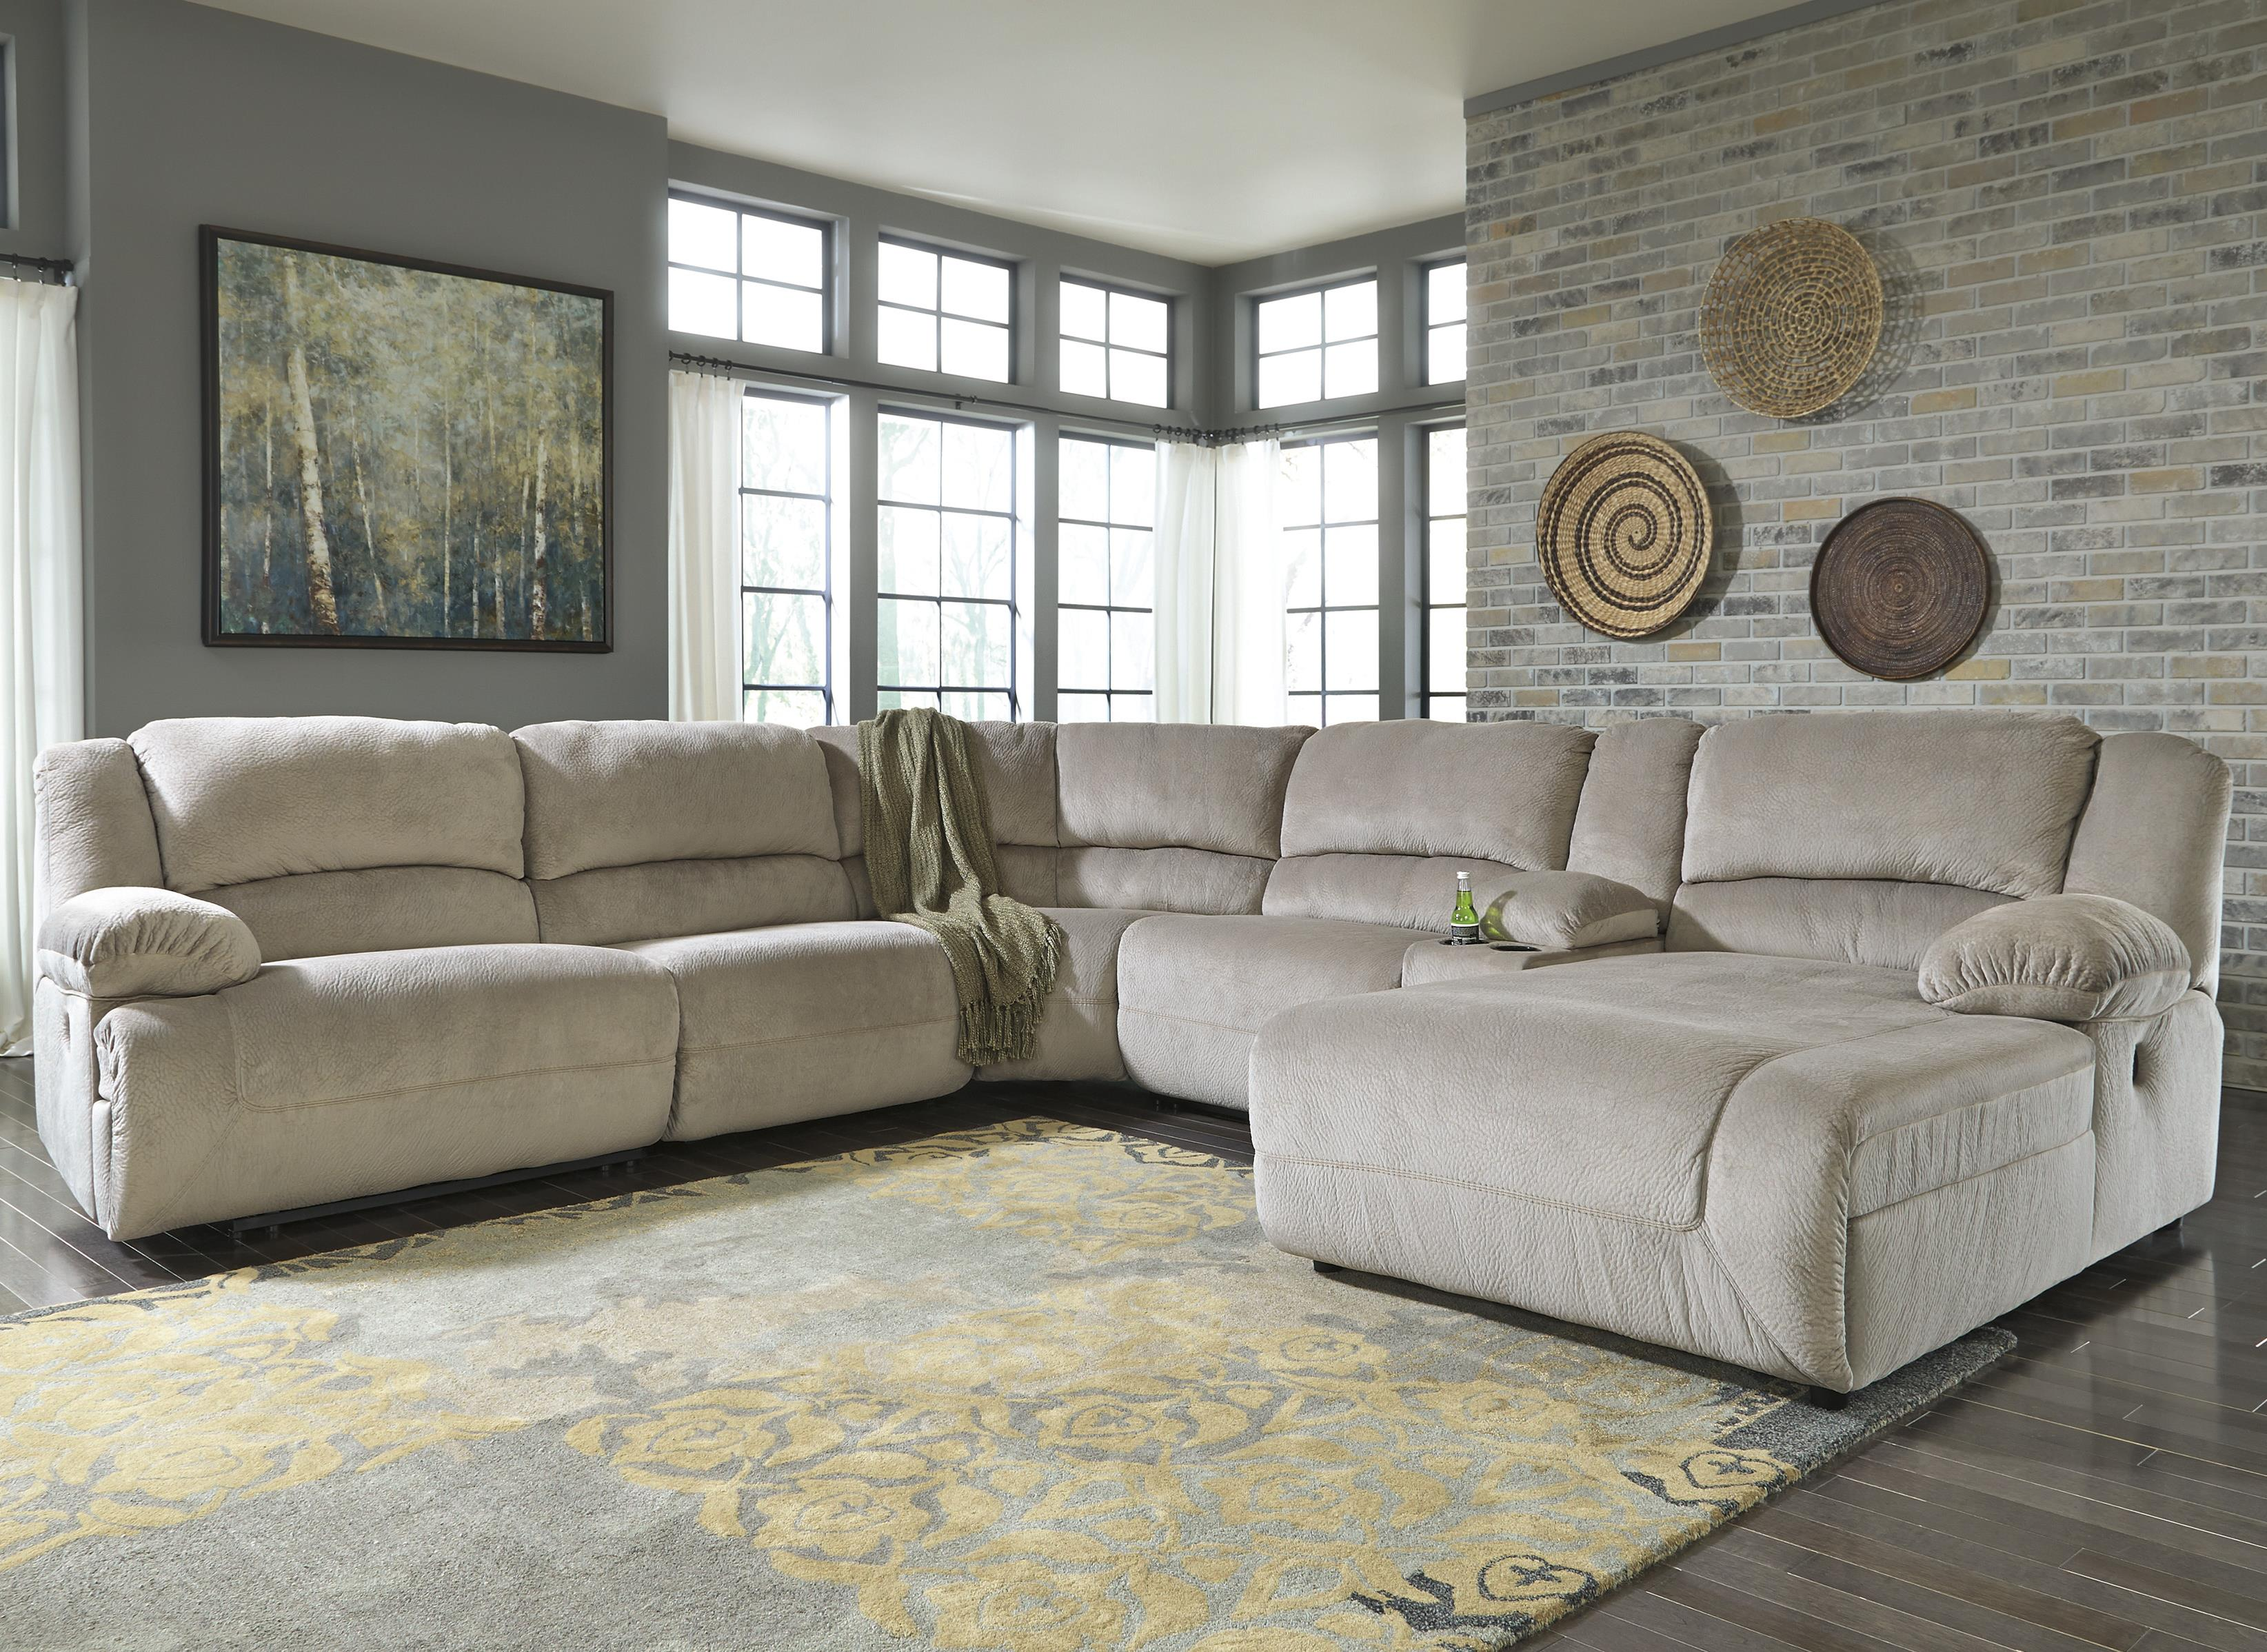 Signature Design by Ashley Toletta - Granite Reclining Sectional w/ Console u0026 Chaise - Item : ashley furniture sectionals - Sectionals, Sofas & Couches